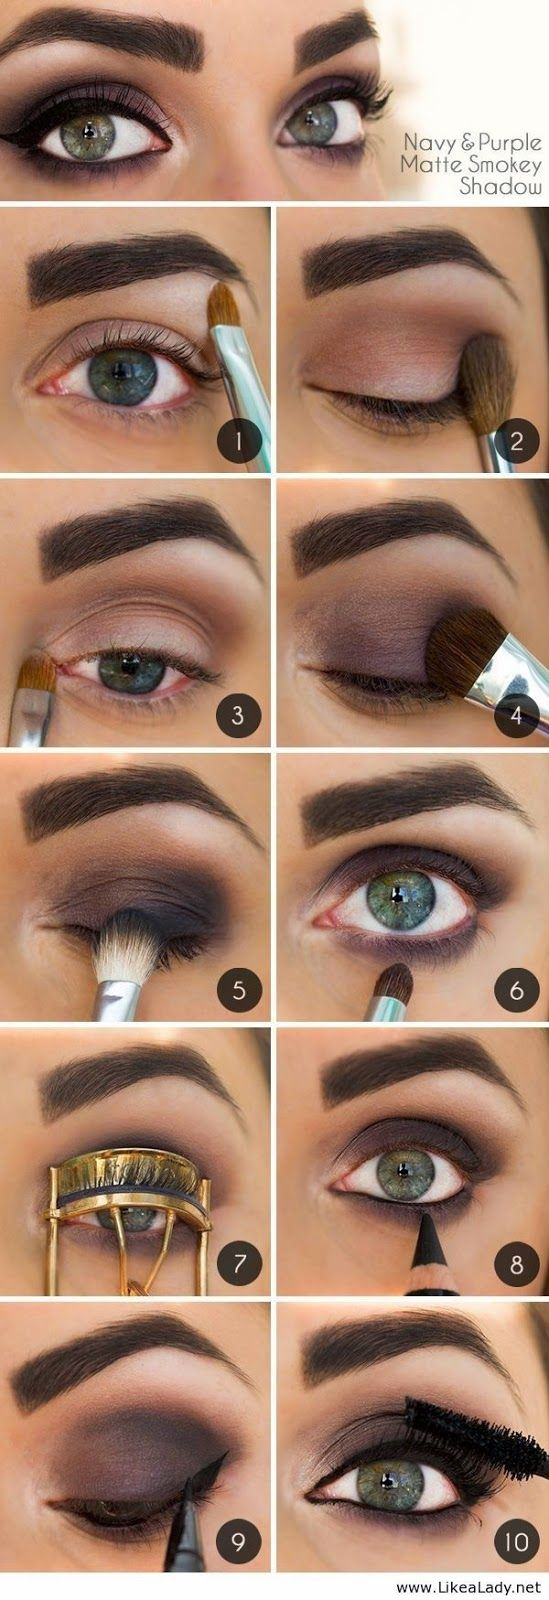 Best Smokey Eye Make-up Step By Step Tutorial and Ideas with Pictures (6)